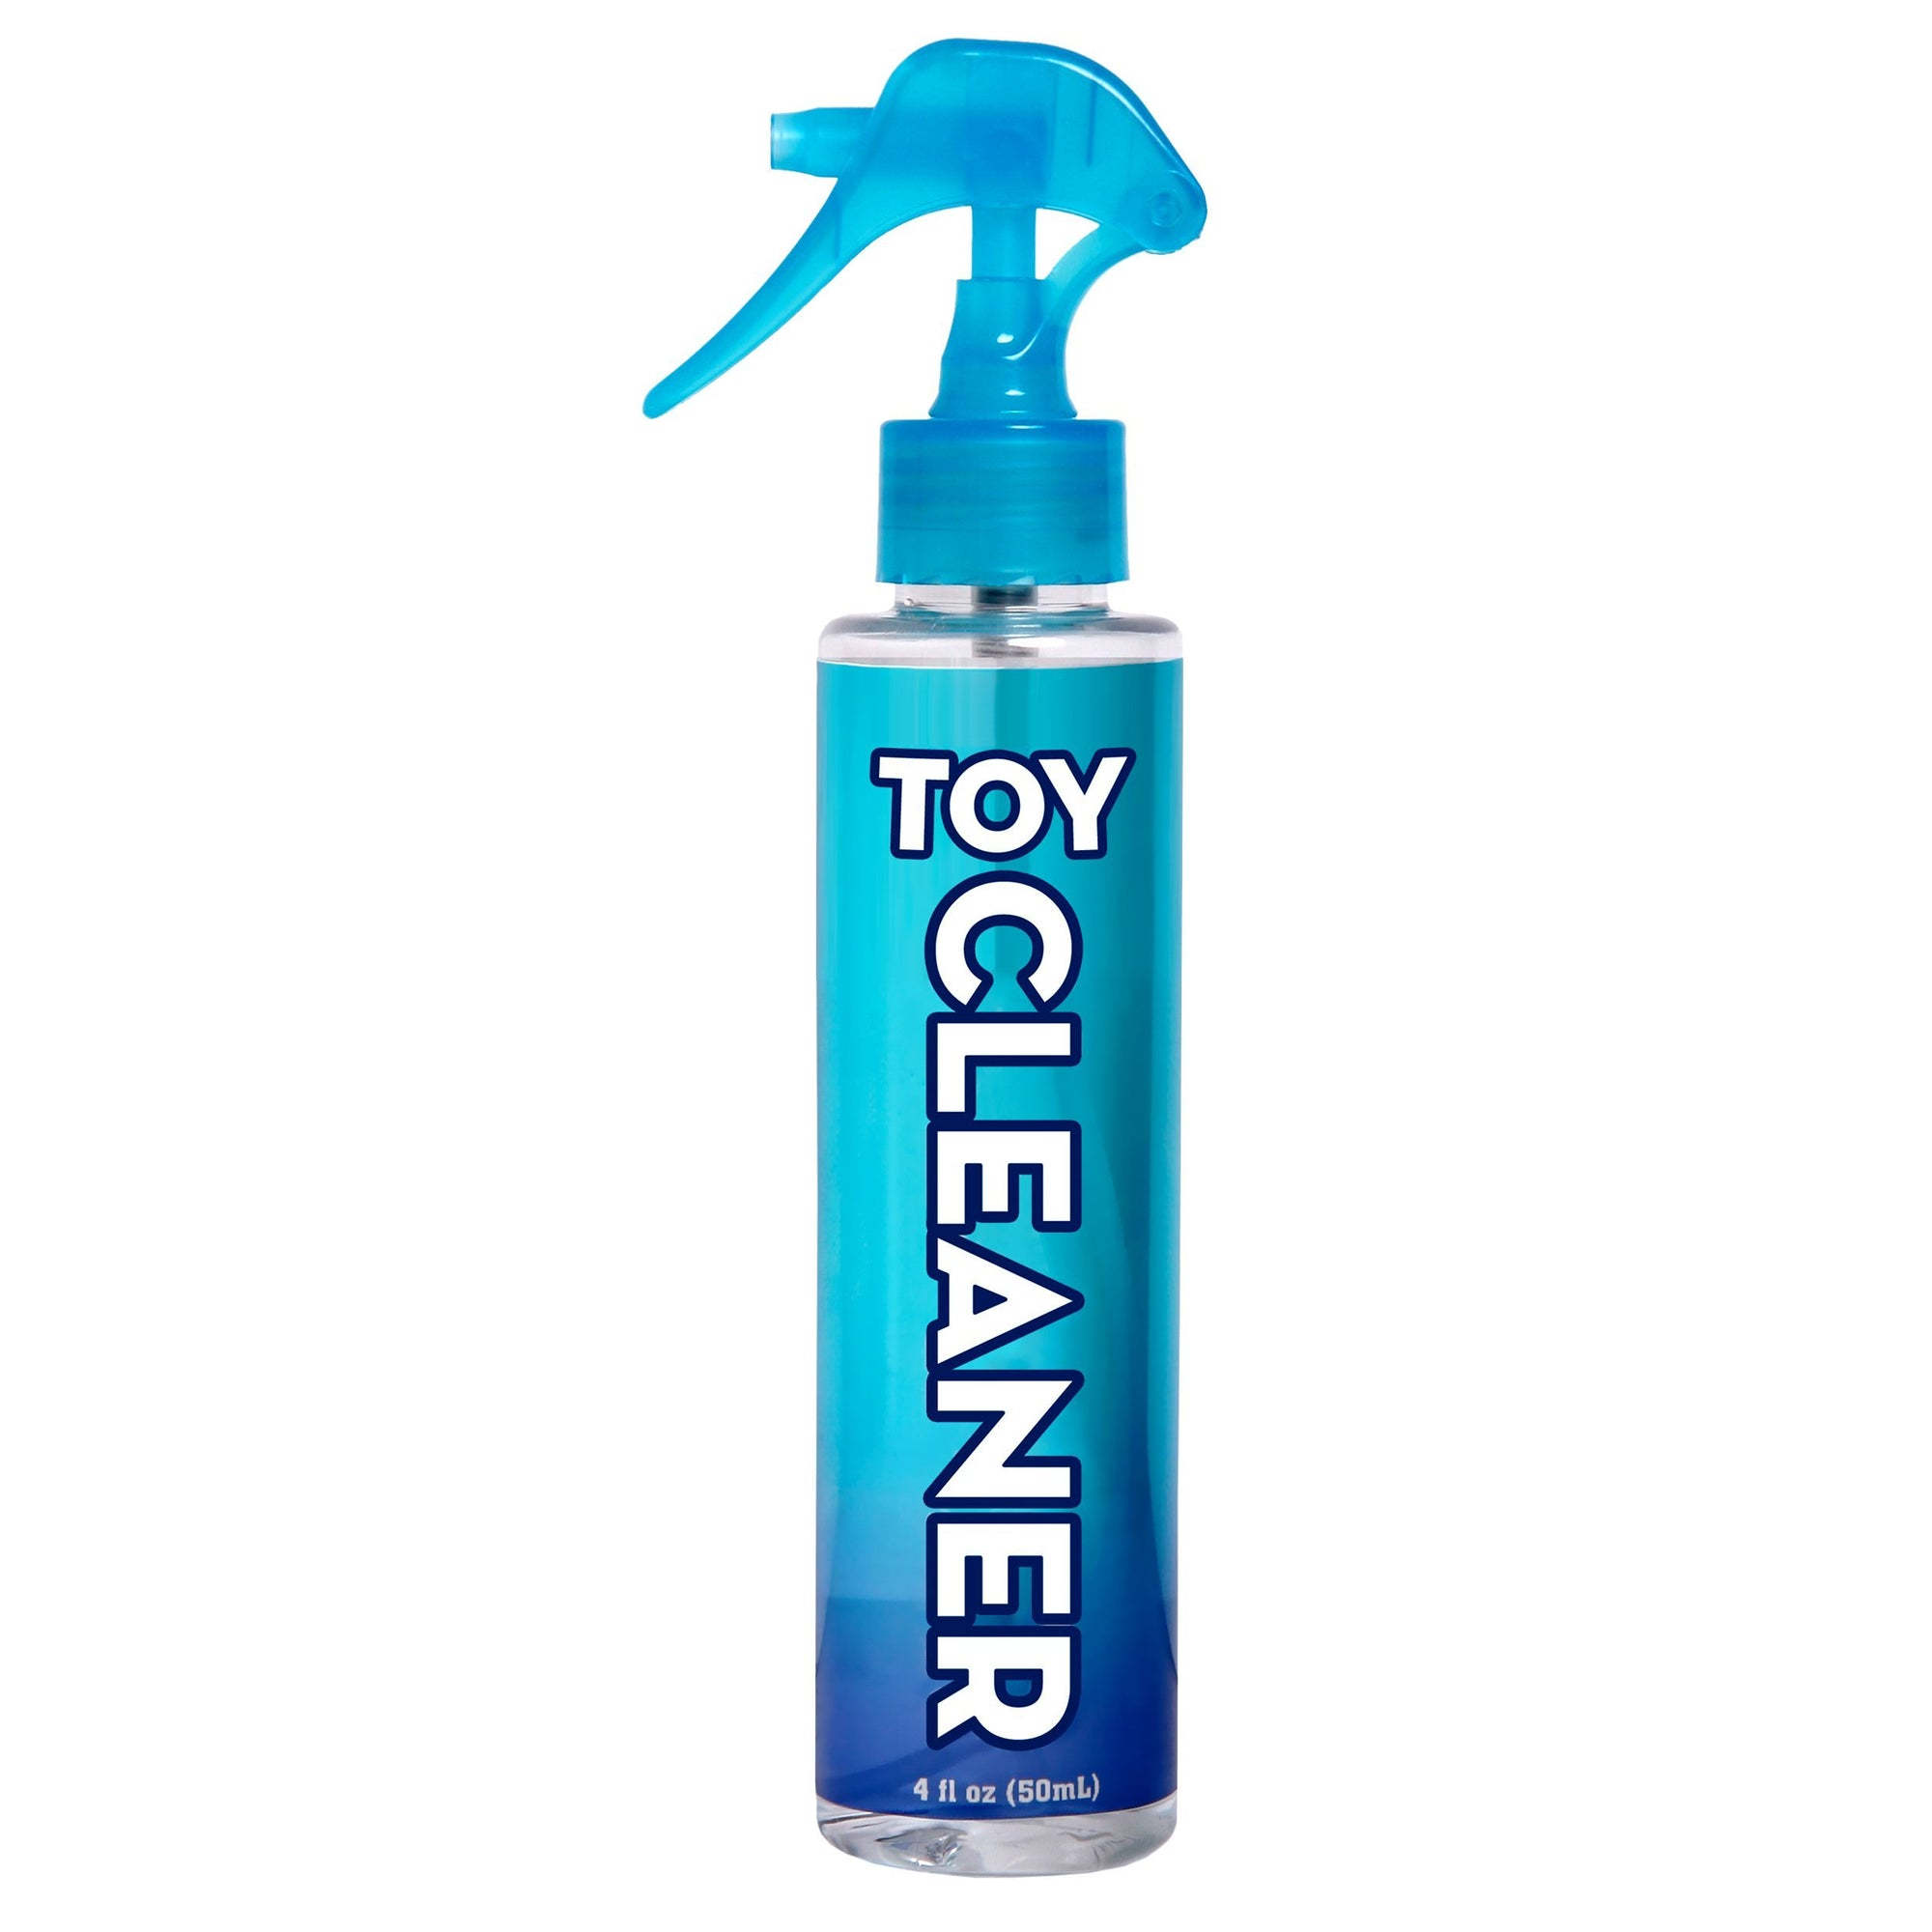 Pipedream - Toy Cleaner 4oz (Clear) Toy Cleaners Singapore